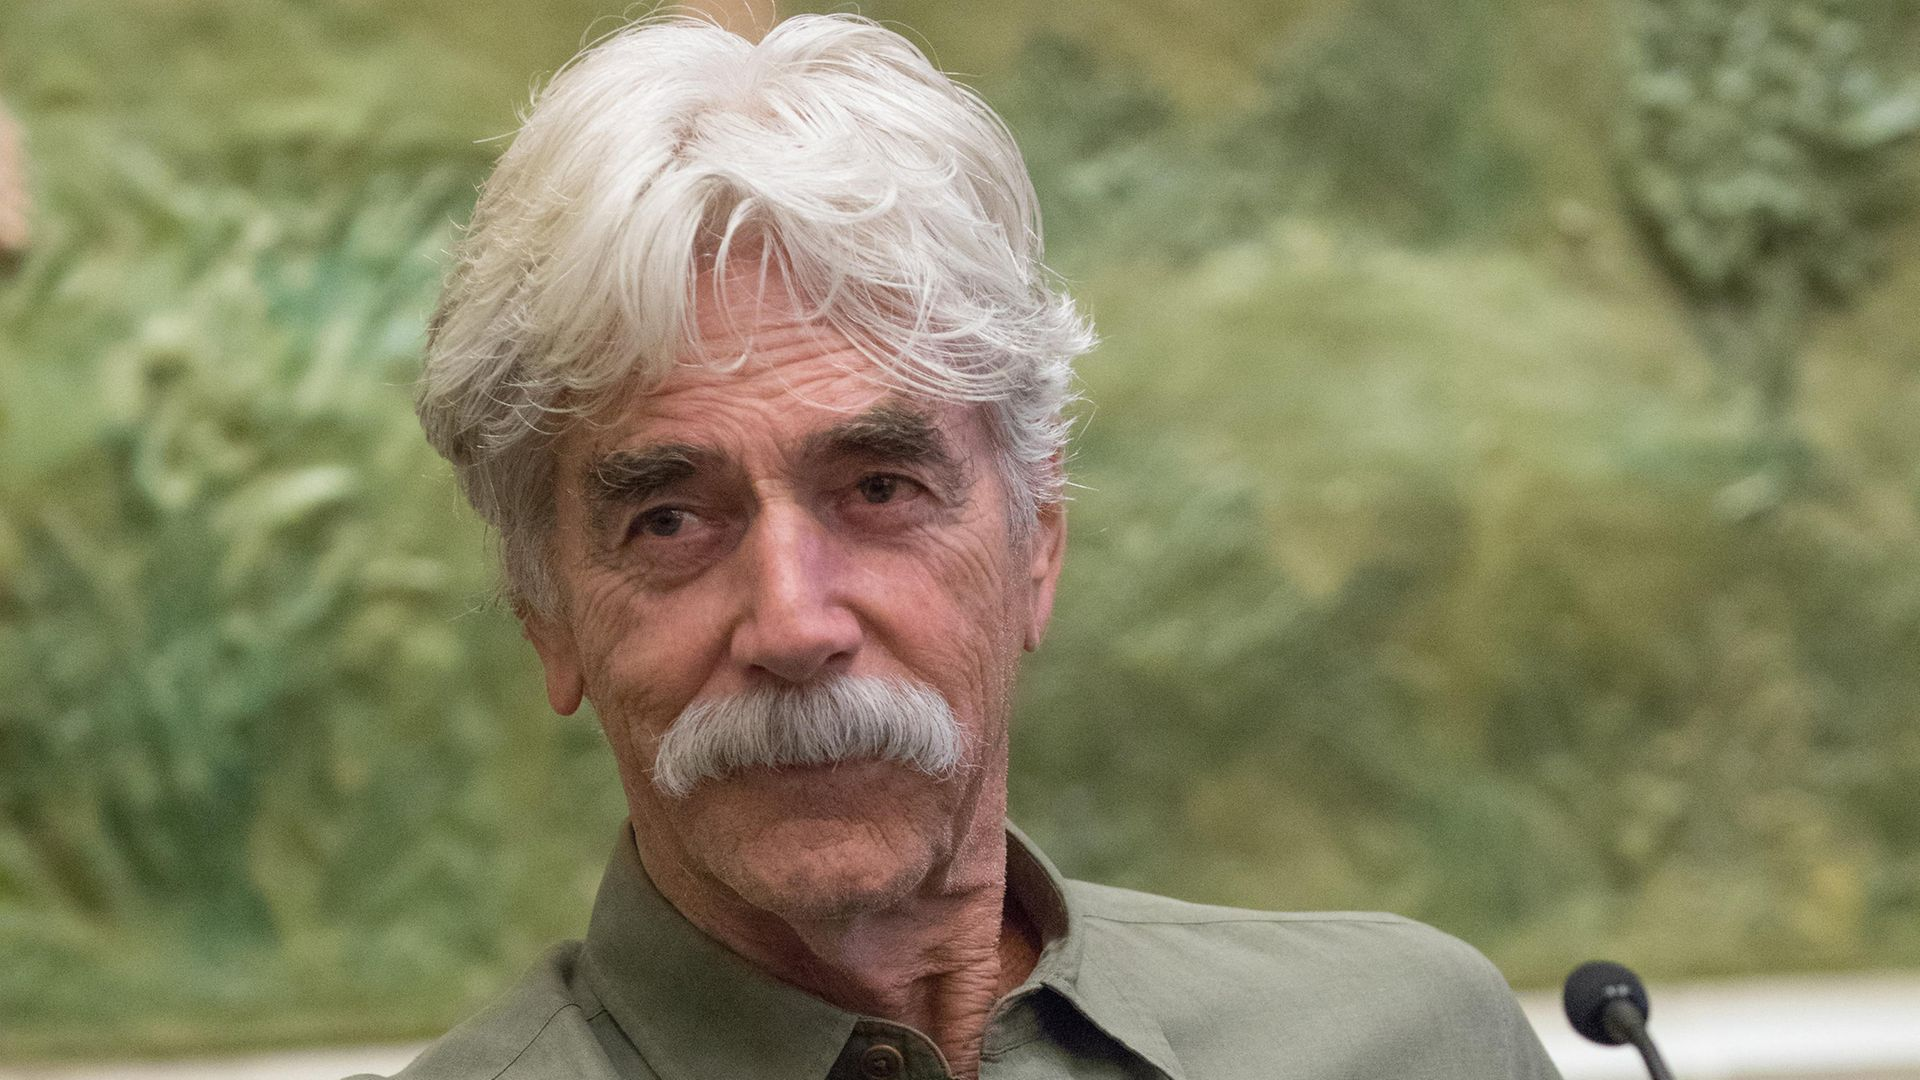 Sam Elliott attends the 2019 Plaza Classic Film Festival press conference at the El Paso Community Foundation. - Credit: Rick Kern/Getty Images